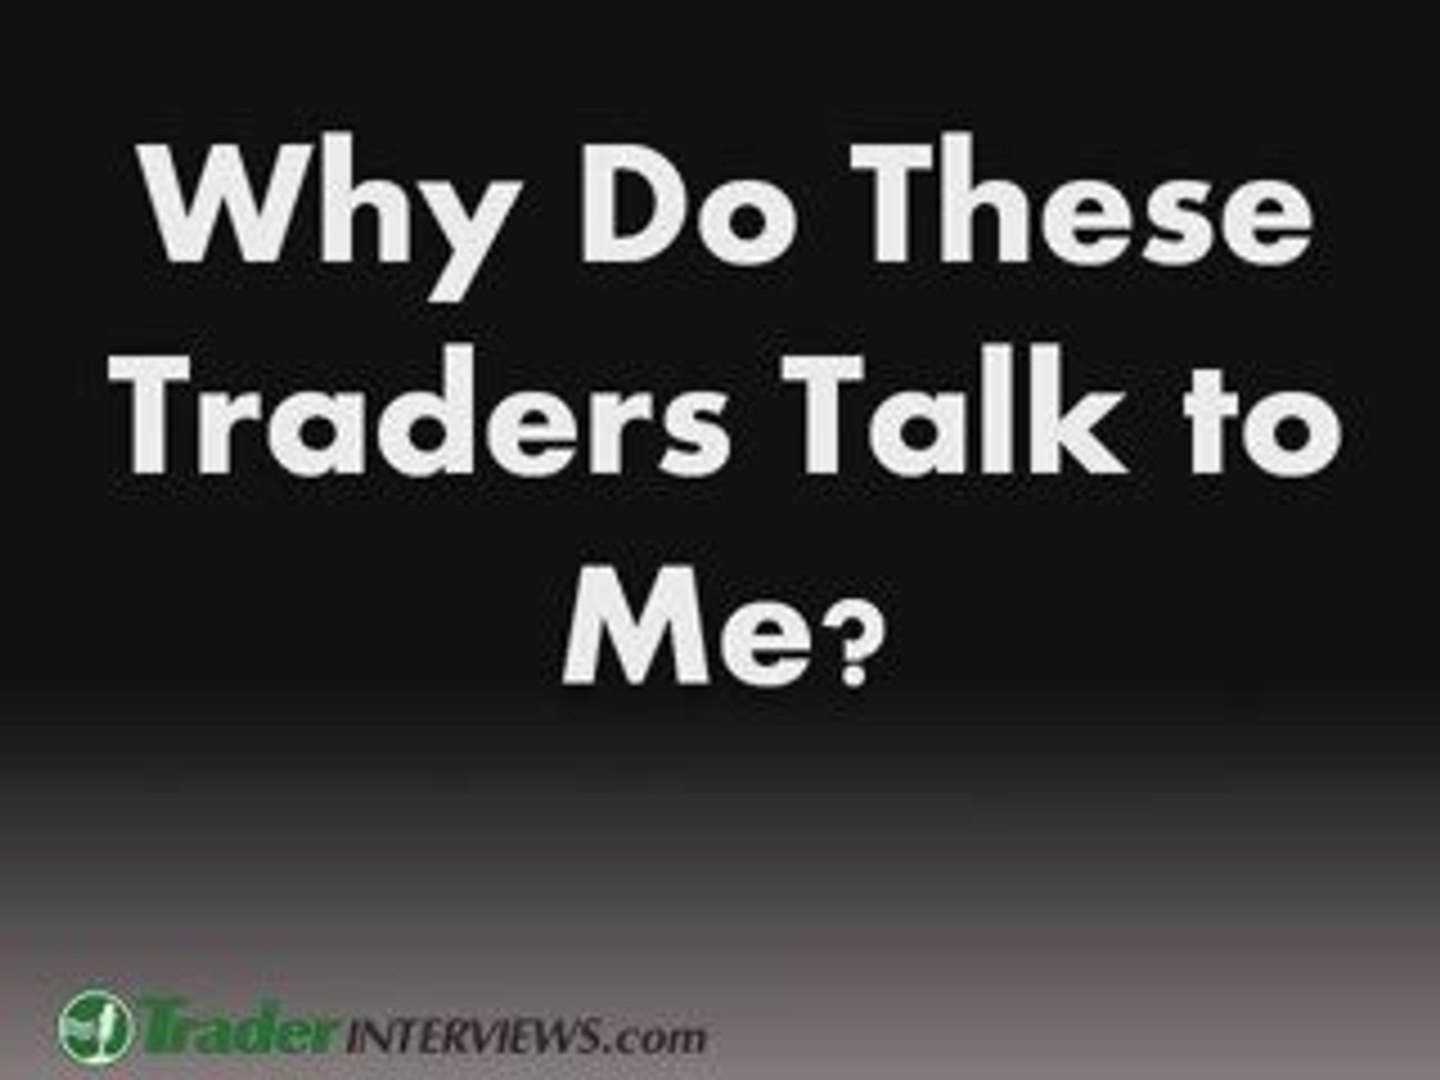 Trader Interviews Introduction